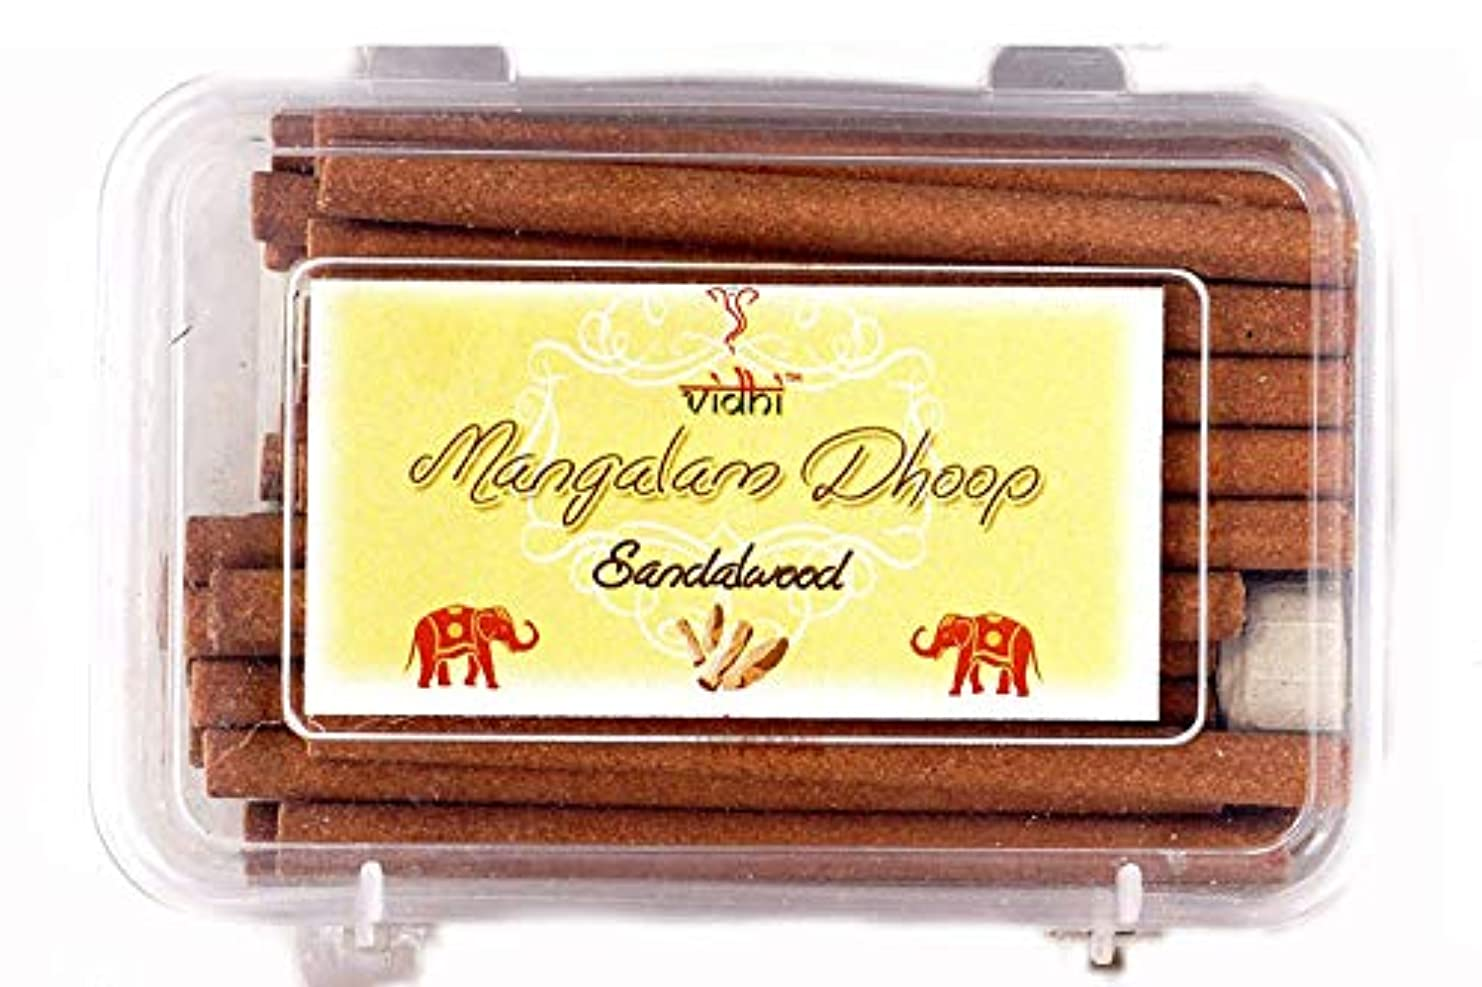 謝る書店鑑定Vidhi Mangalam Dhoop Sticks Pack/Box (Sandalwood) - Pack of 40 Dhoop Sticks (Natural Dhoop Batti) (Burn TIME: 30 Minutes)